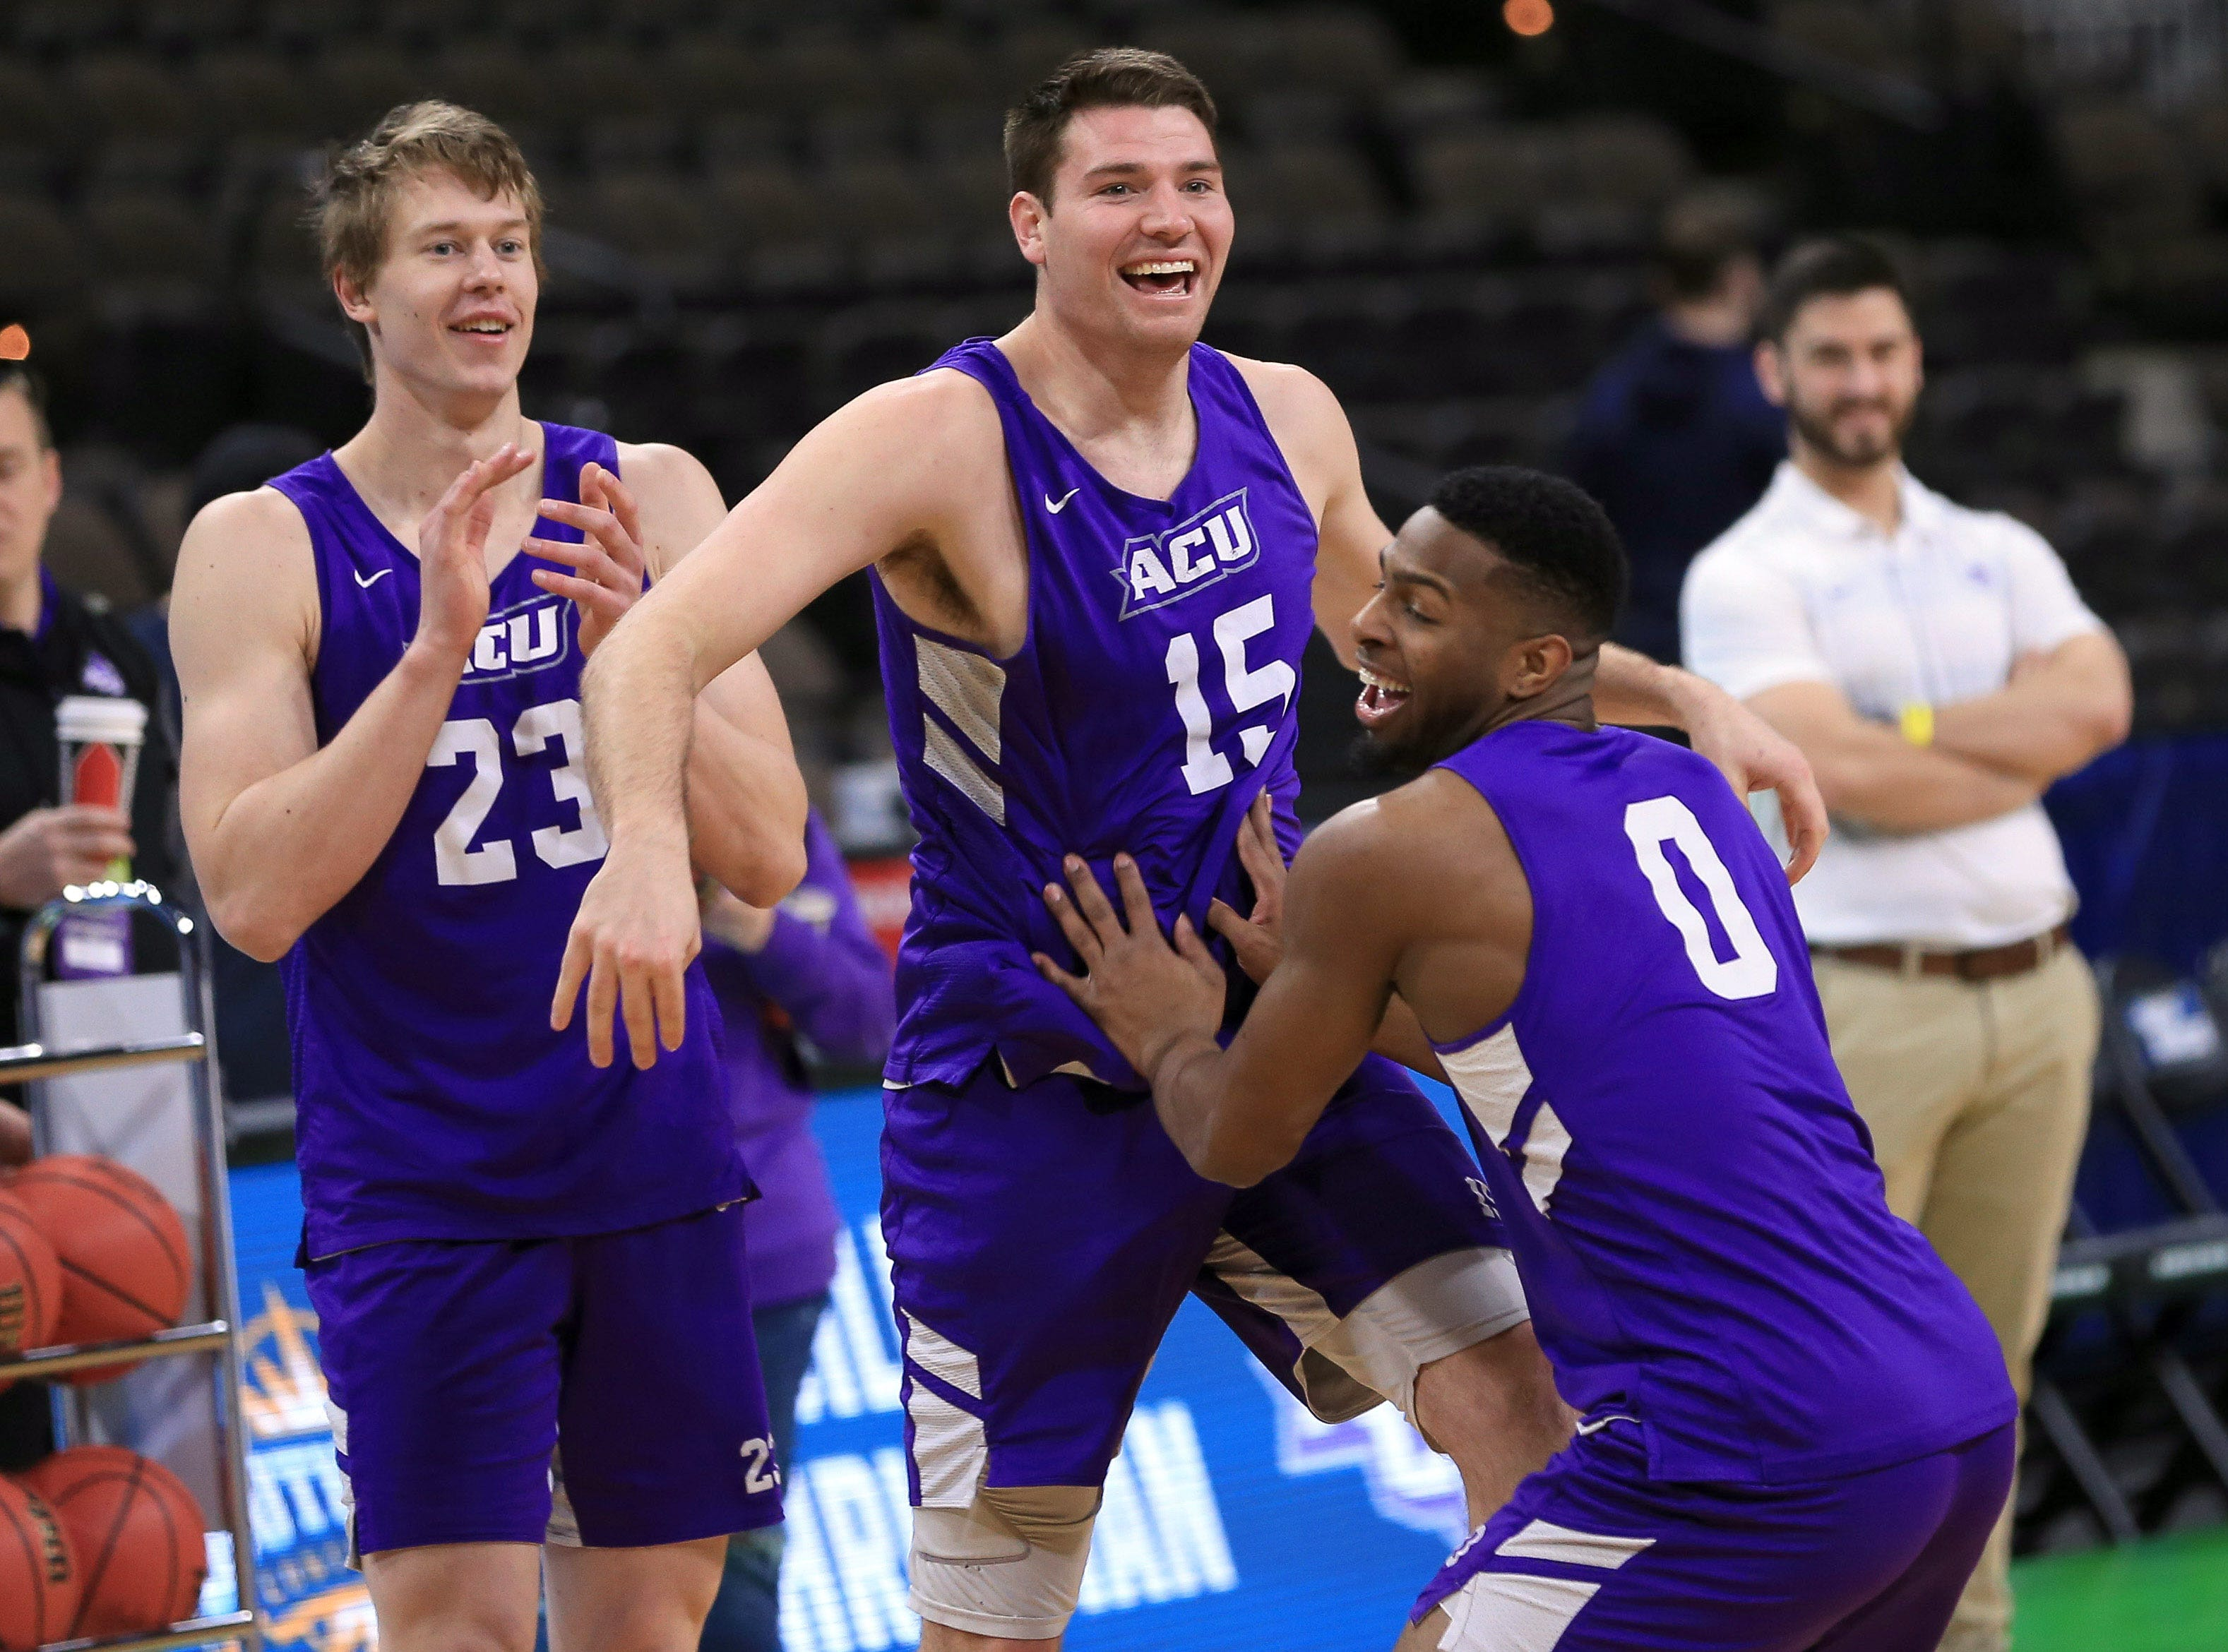 Mar 20, 2019; Jacksonville, FL, USA; Abilene Christian Wildcats forward Hayden Howell (23) and forward Hayden Farquhar (15) and guard Jaylen Franklin (0) during practice day before the first round of the 2019 NCAA Tournament at Jacksonville Veterans Memorial Arena. Mandatory Credit: Matt Stamey-USA TODAY Sports